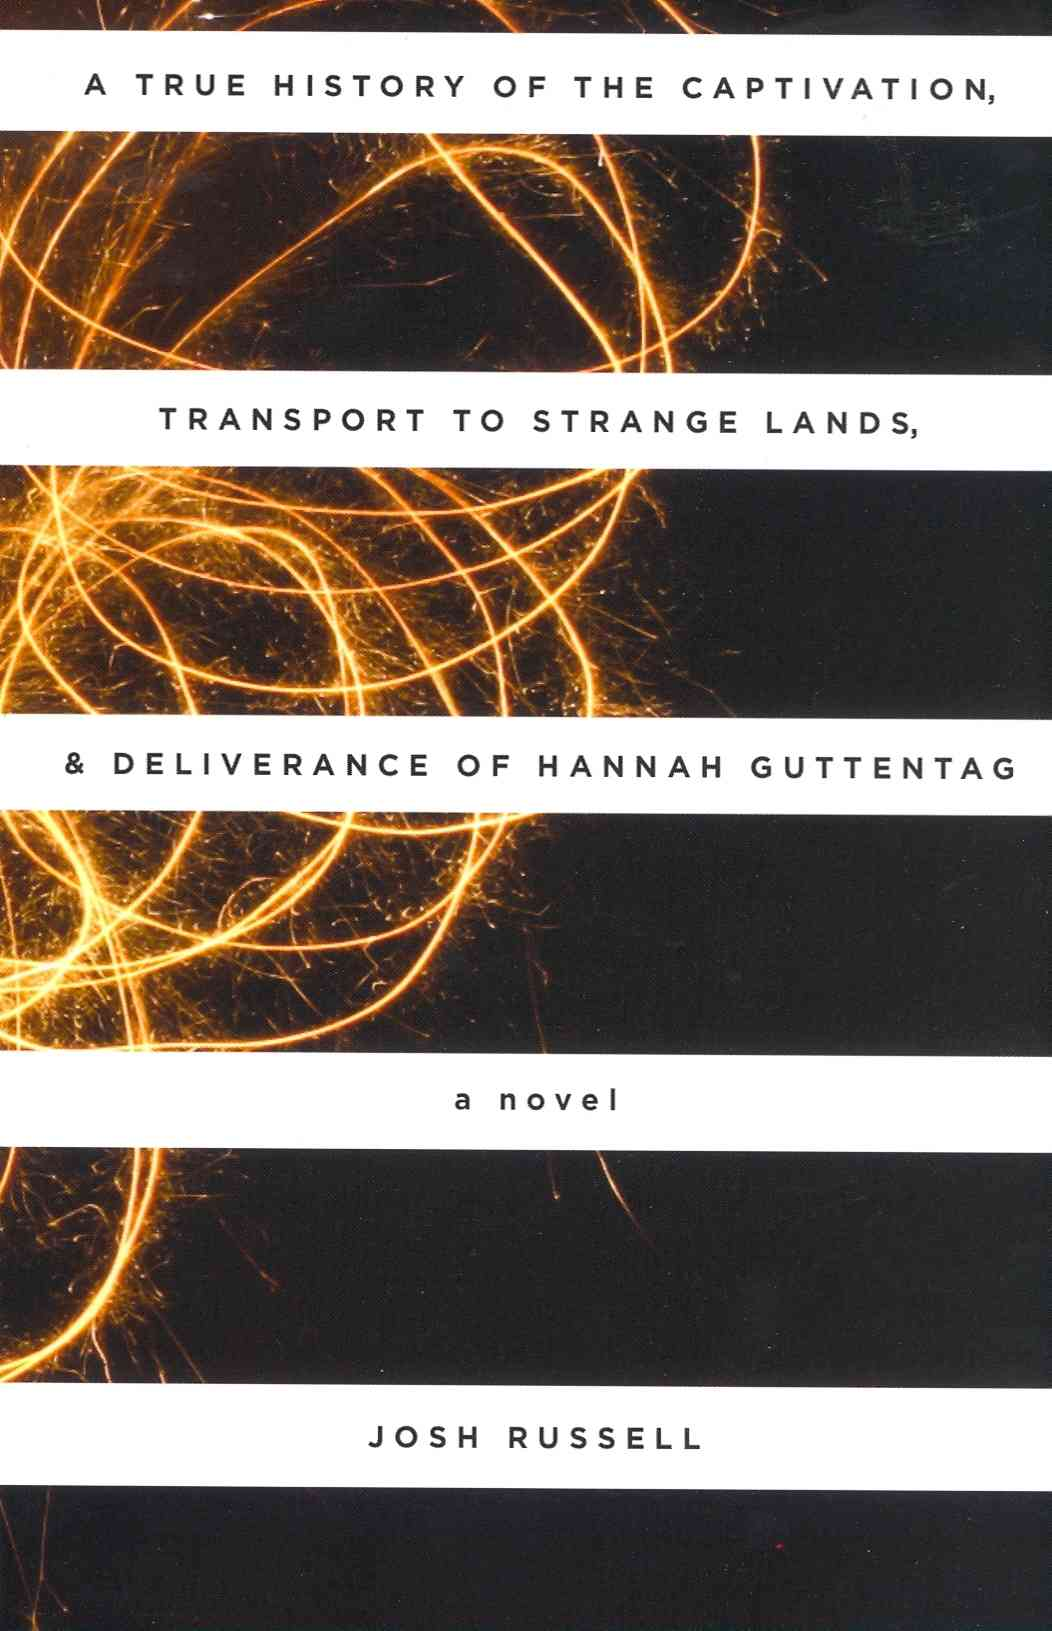 A True History of the Captivation, Transport to Strange Lands, & Deliverance of Hannah Guttentag By Russell, Josh